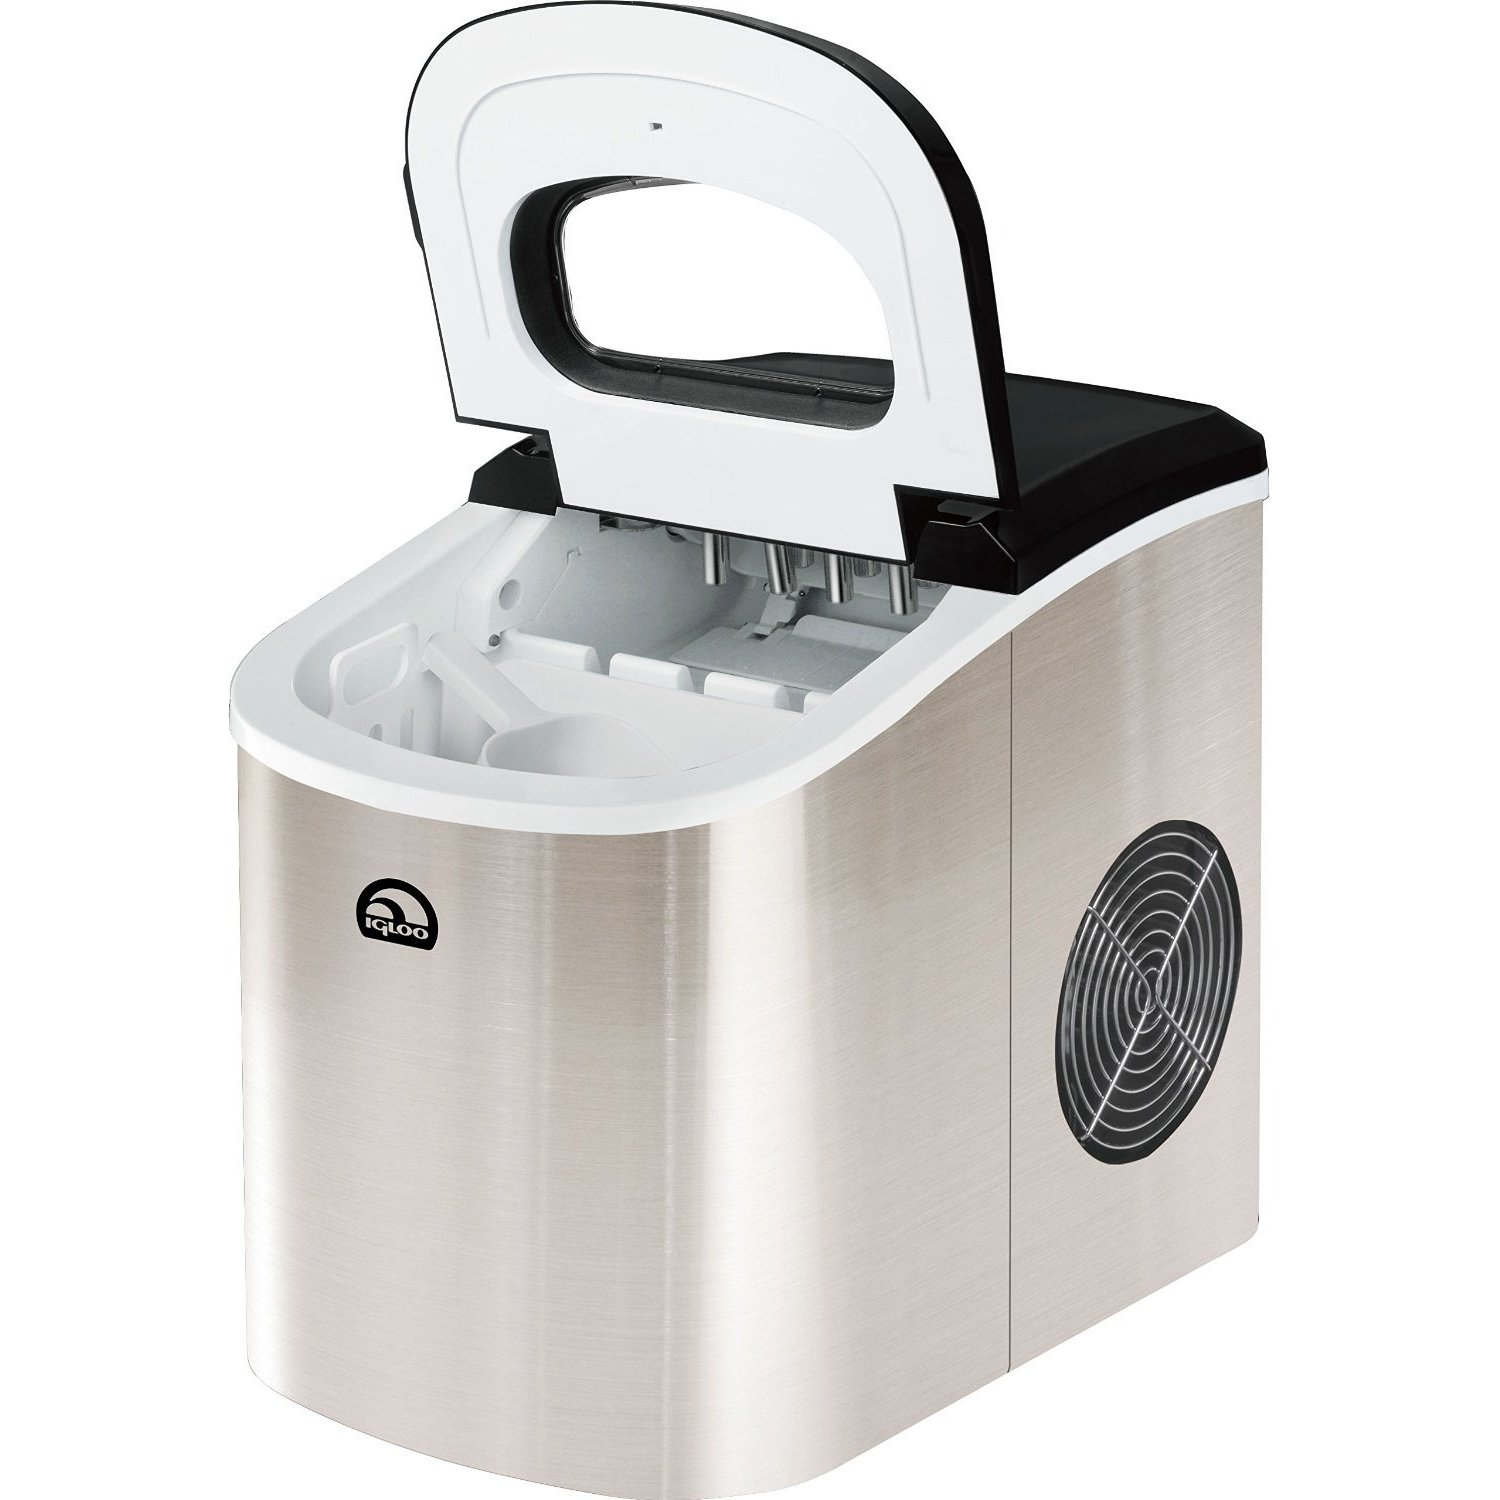 Igloo Ice102 Counter Top Ice Maker Silver Overstock 10992967